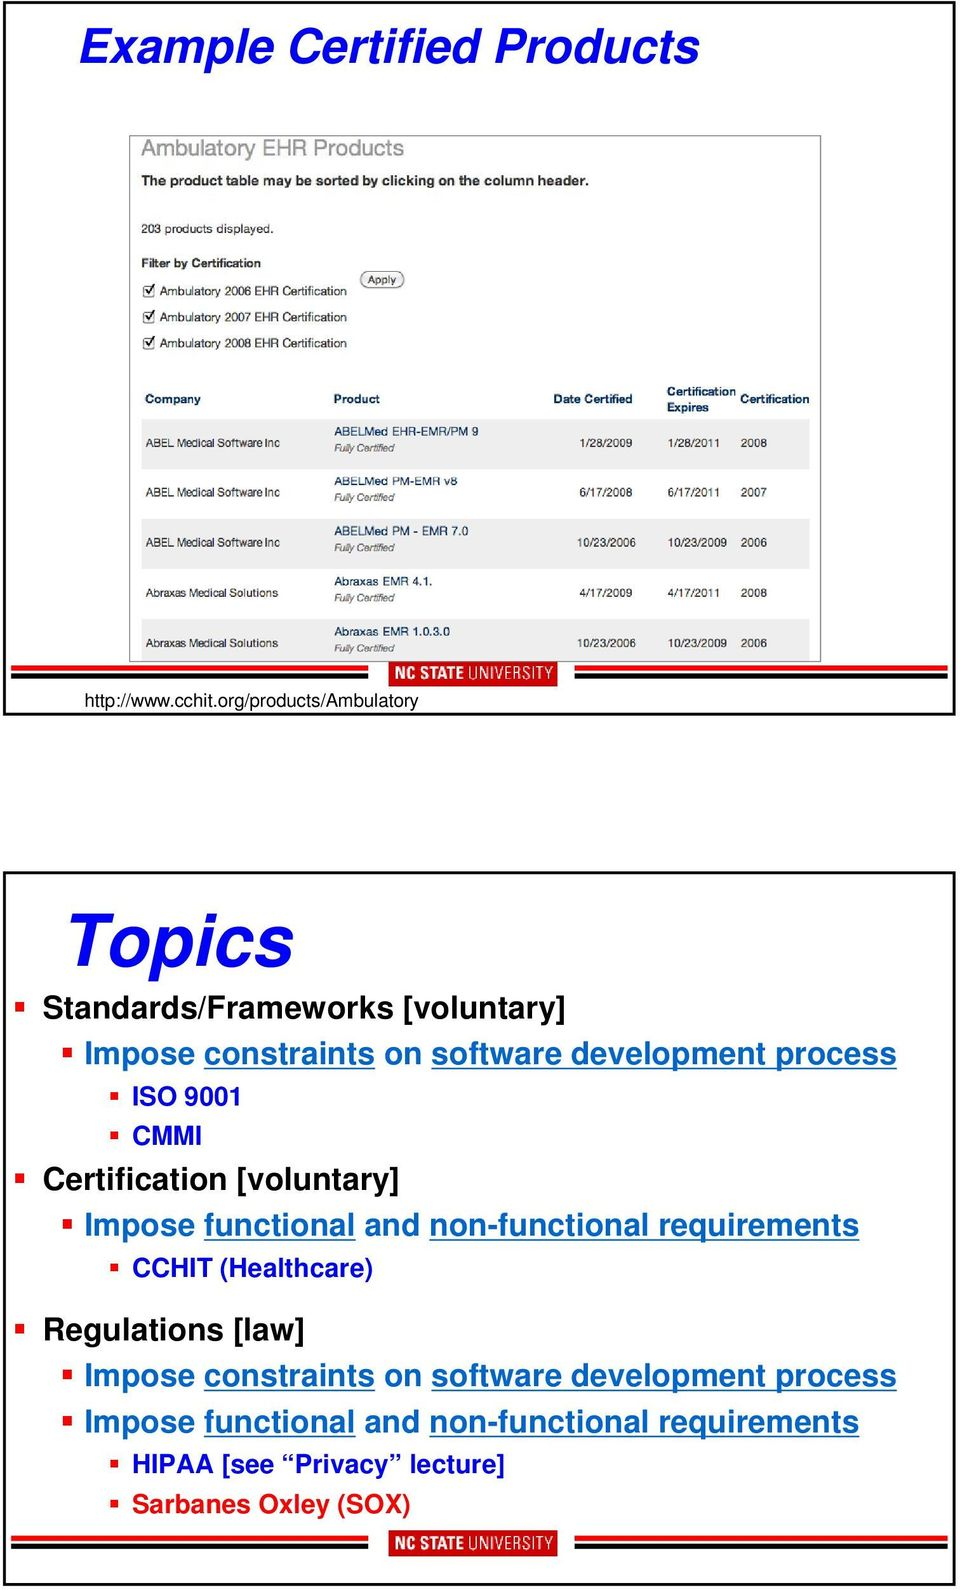 [voluntary] ISO 9001 CMMI Certification [voluntary] CCHIT